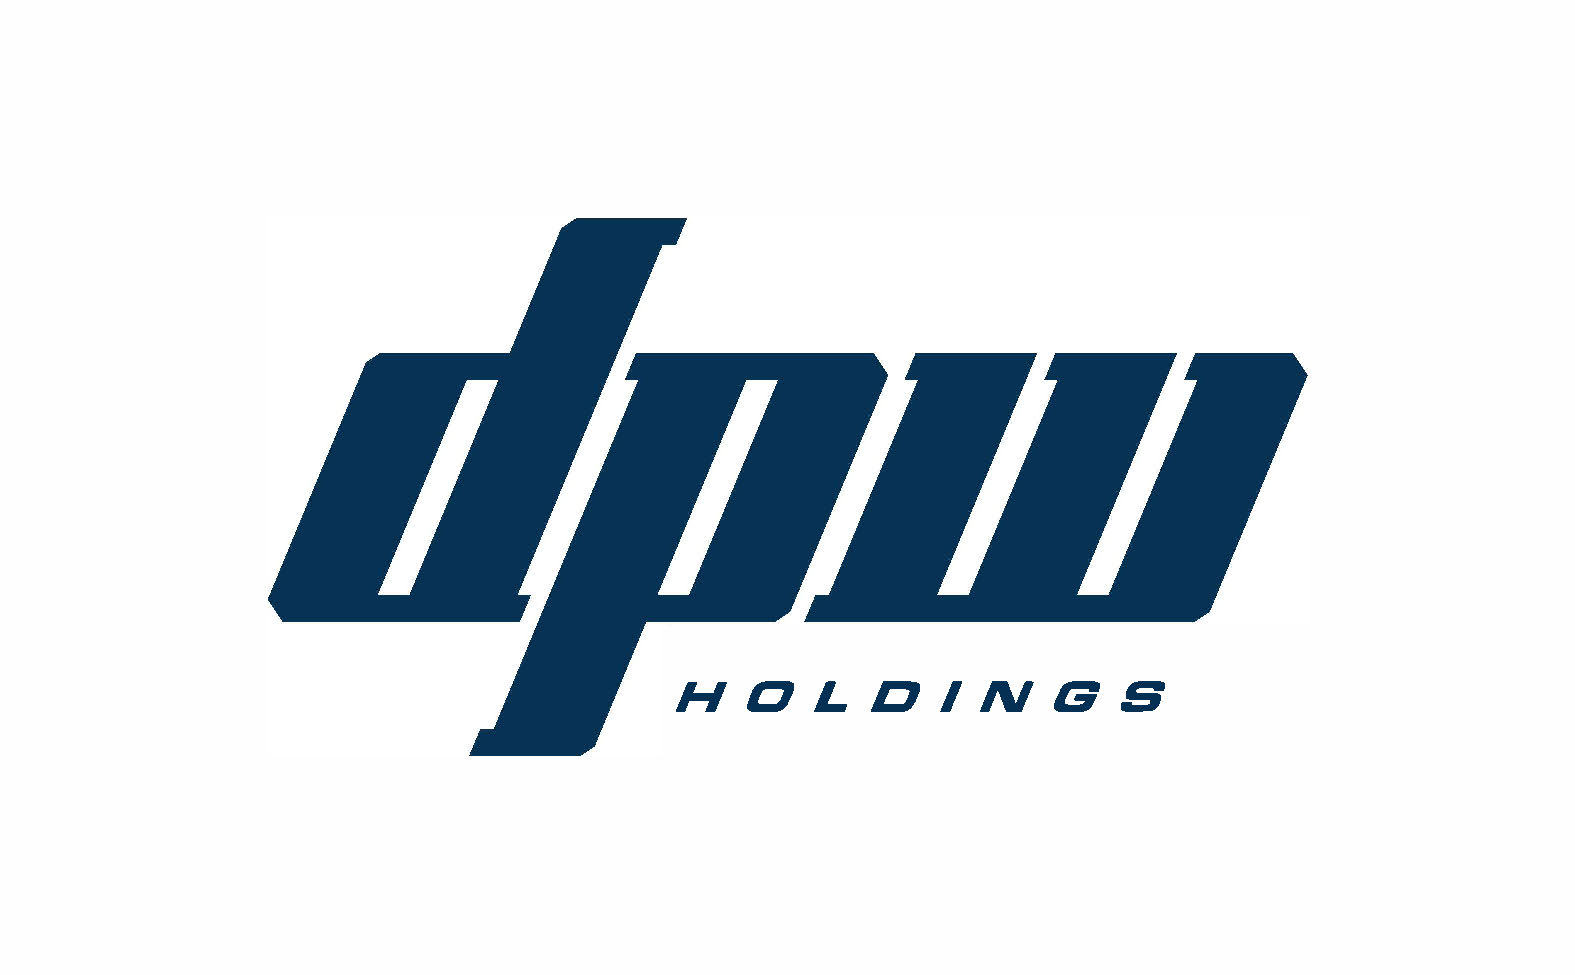 DPW Holdings - Corporate Logo Dark Blue Lettering Only 01052018.jpg